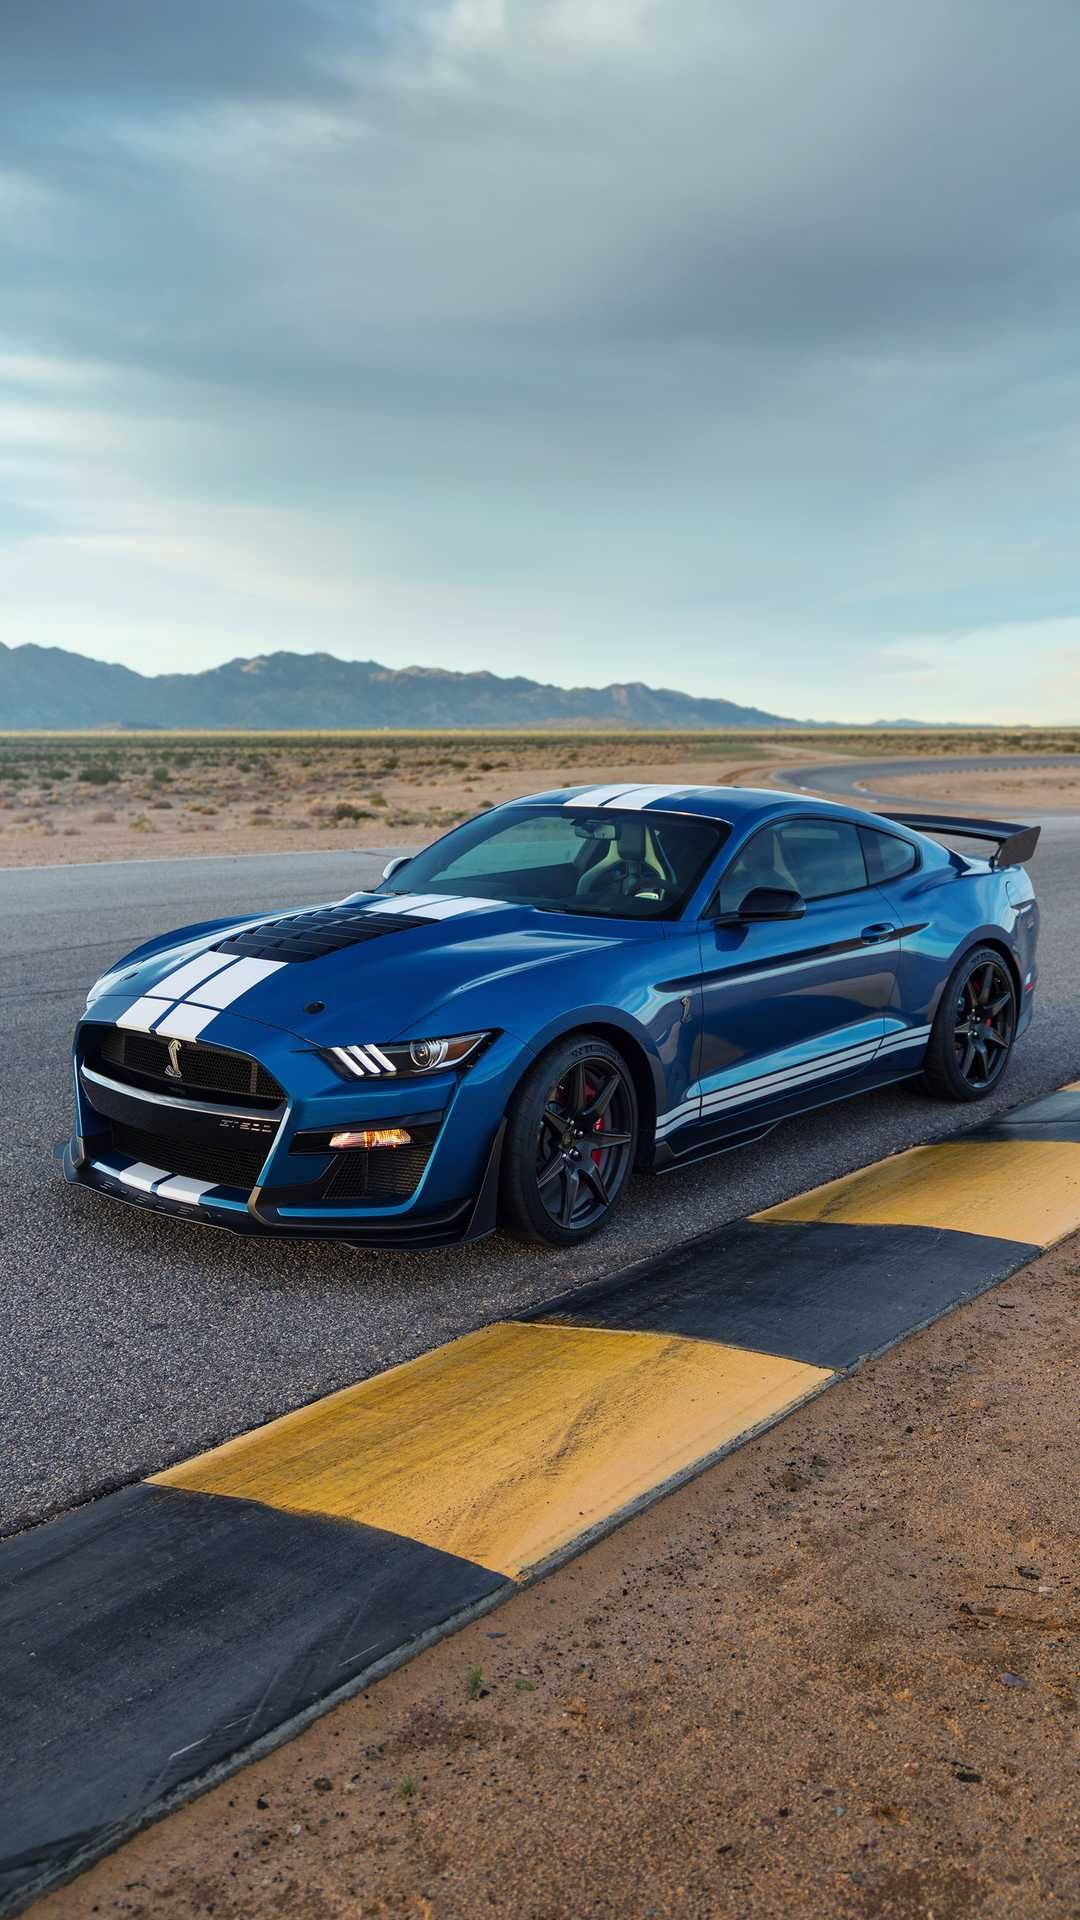 New 2020 Ford Mustang Shelby Gt500 Blue Ford Mustang Shelby Gt500 Ford Mustang Shelby Mustang Shelby